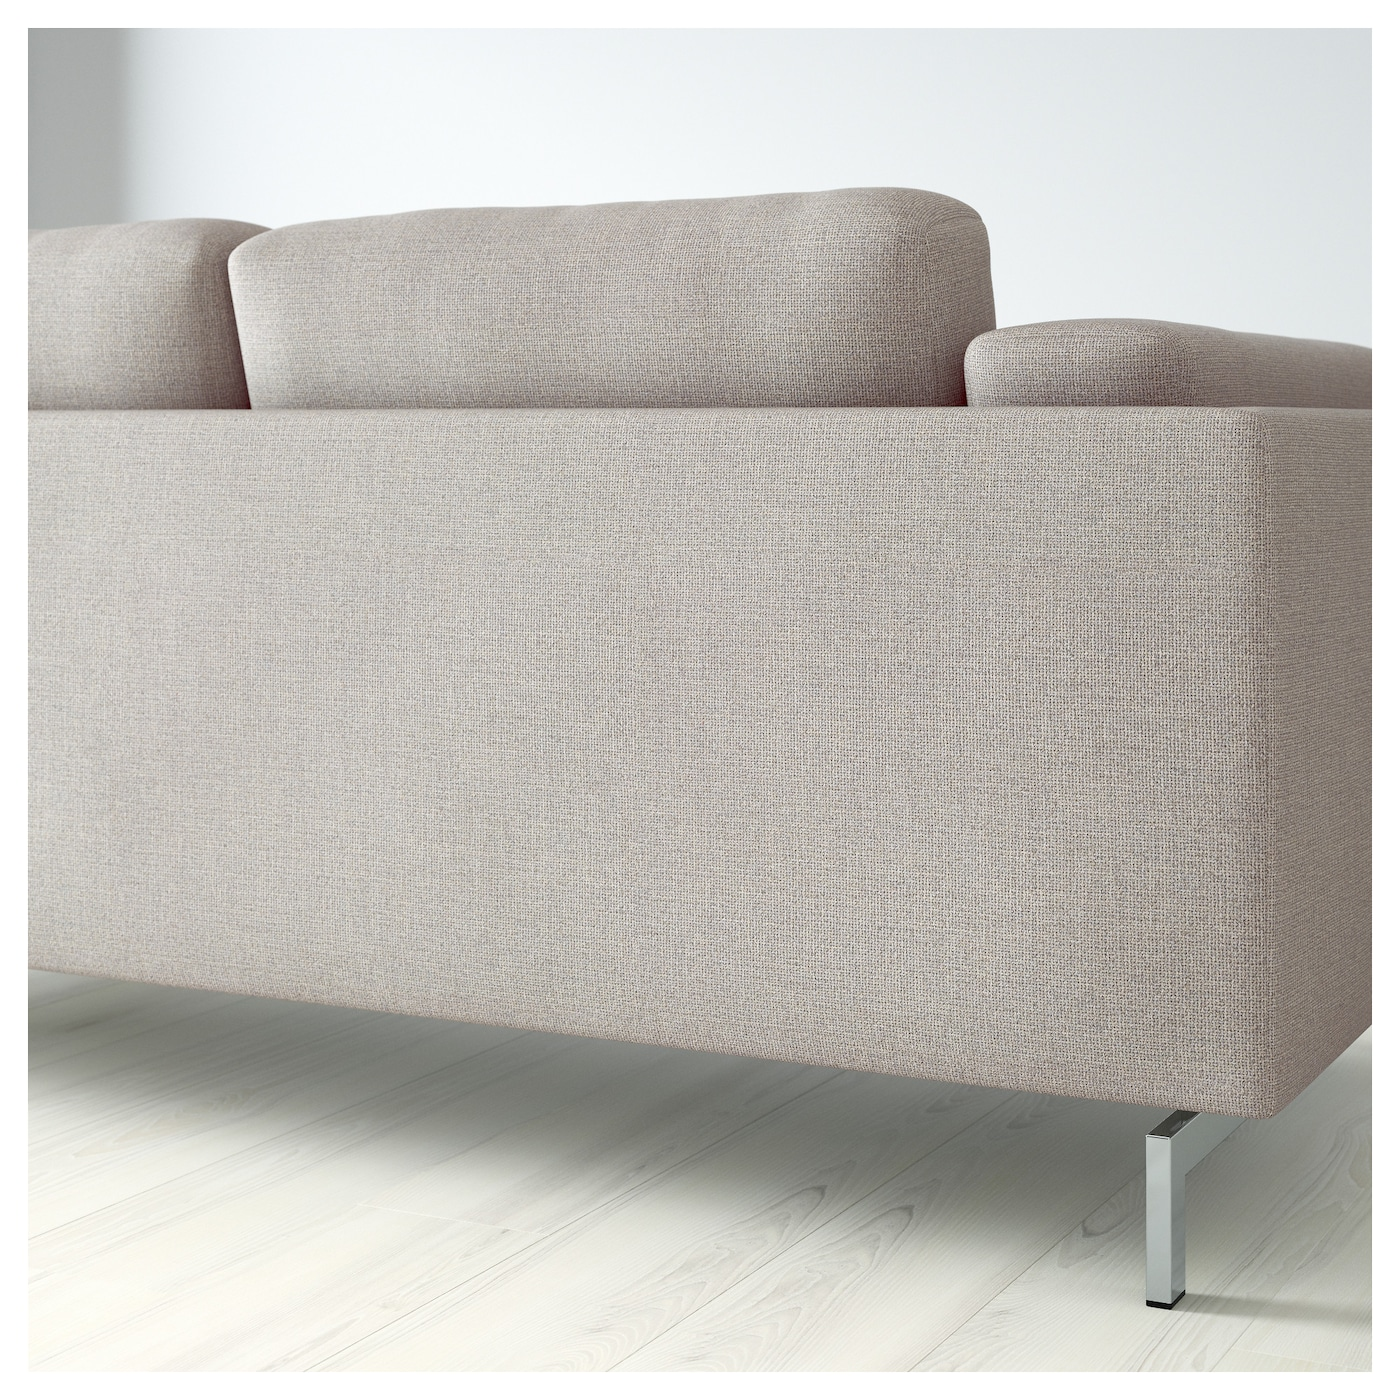 IKEA NOCKEBY two-seat sofa Heavy, structured cotton cover, yarn-dyed with two tone effect.